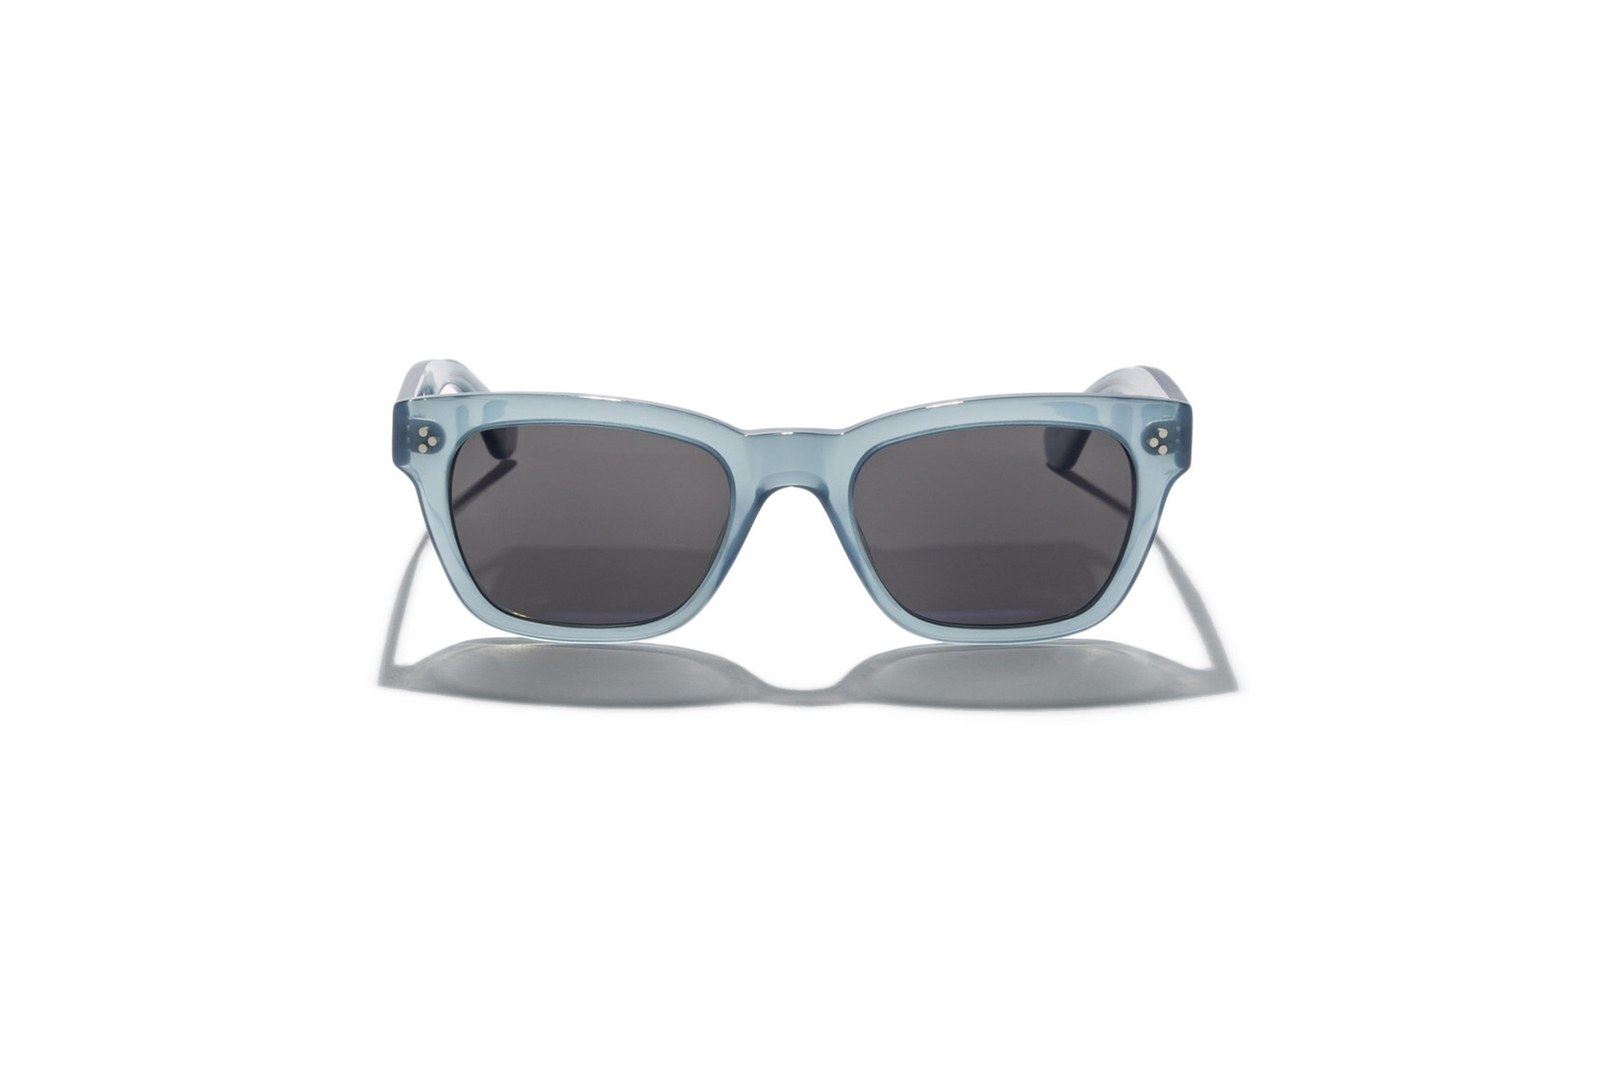 Kính Saturdays NYC Perry sunglasses